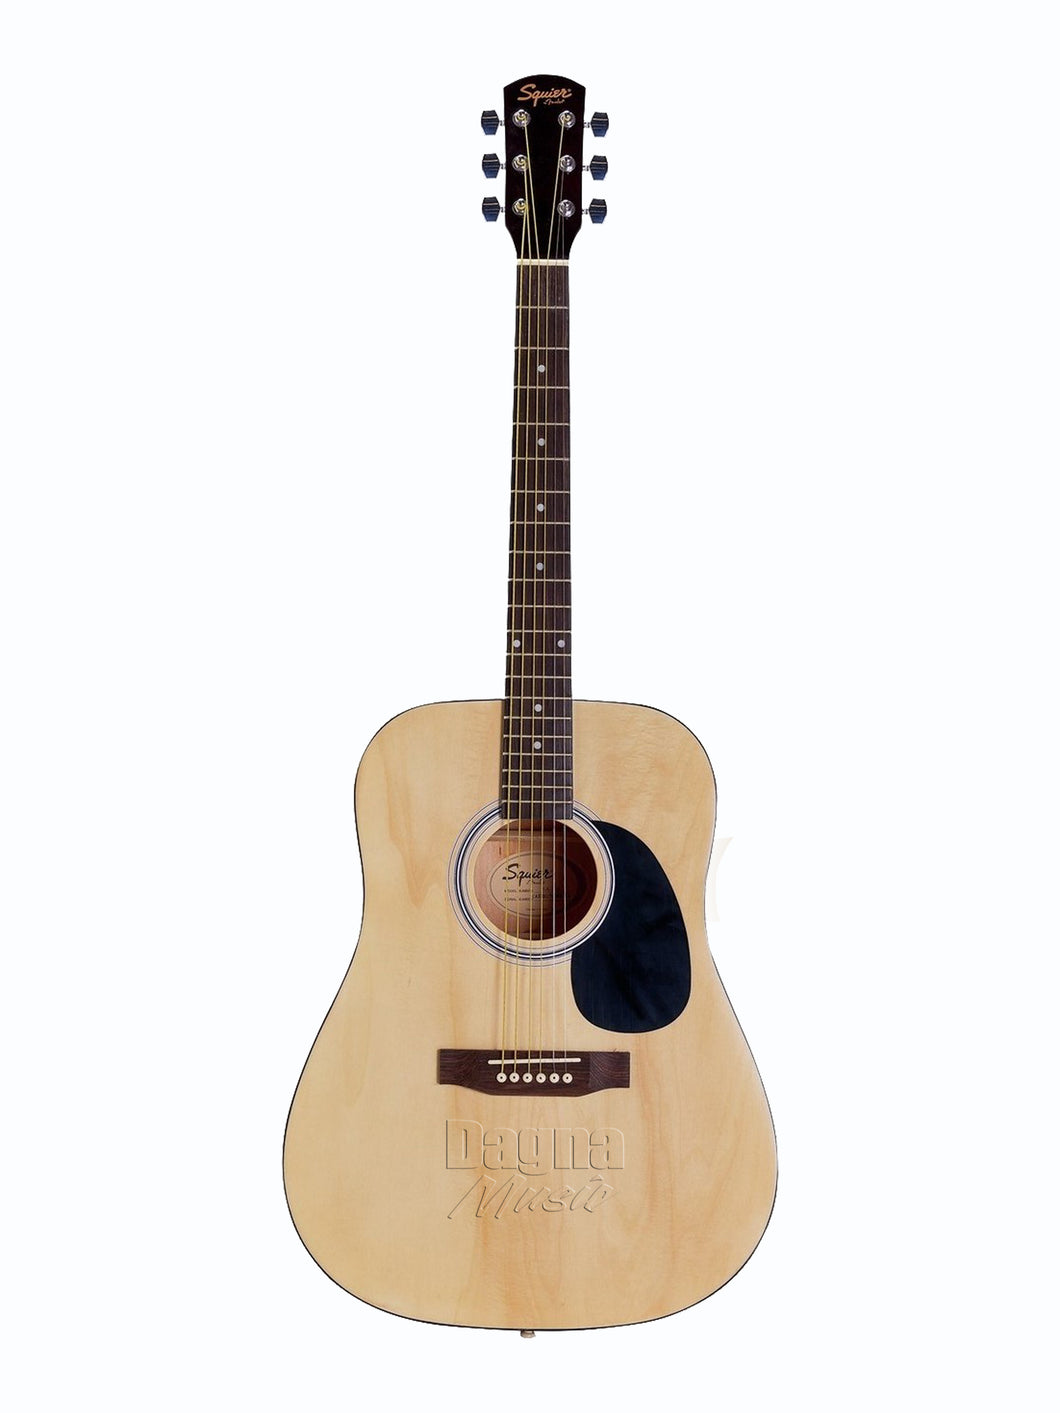 Fender Squier SA-150 Dreadnought Acoustic Guitar Natural